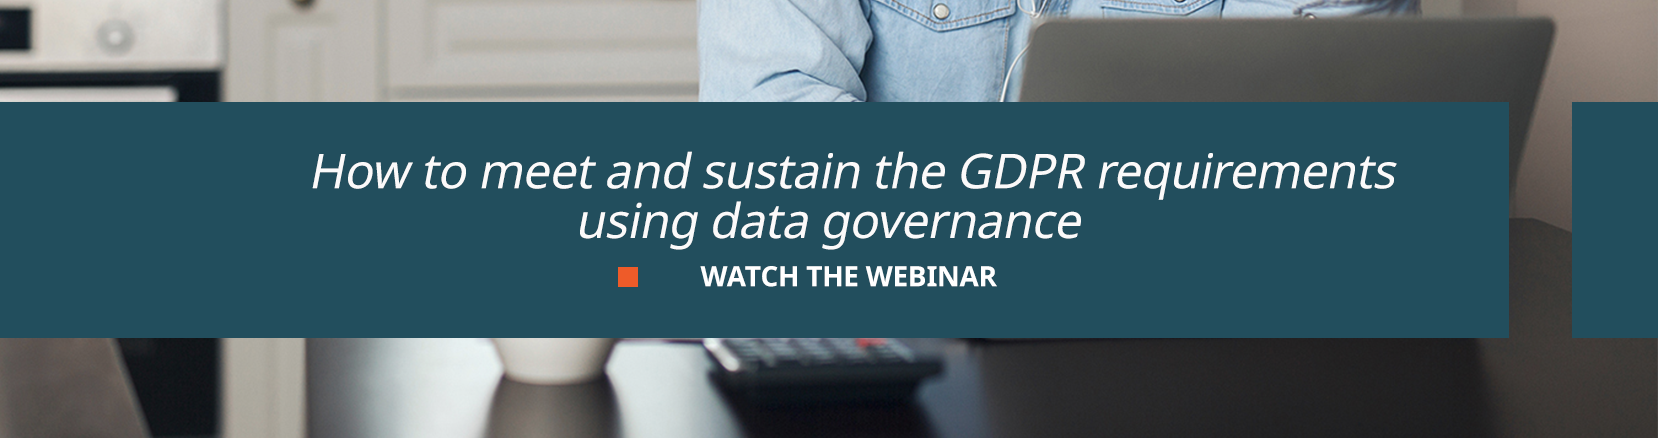 how to meet and sustain the GDPR requirements using data governance